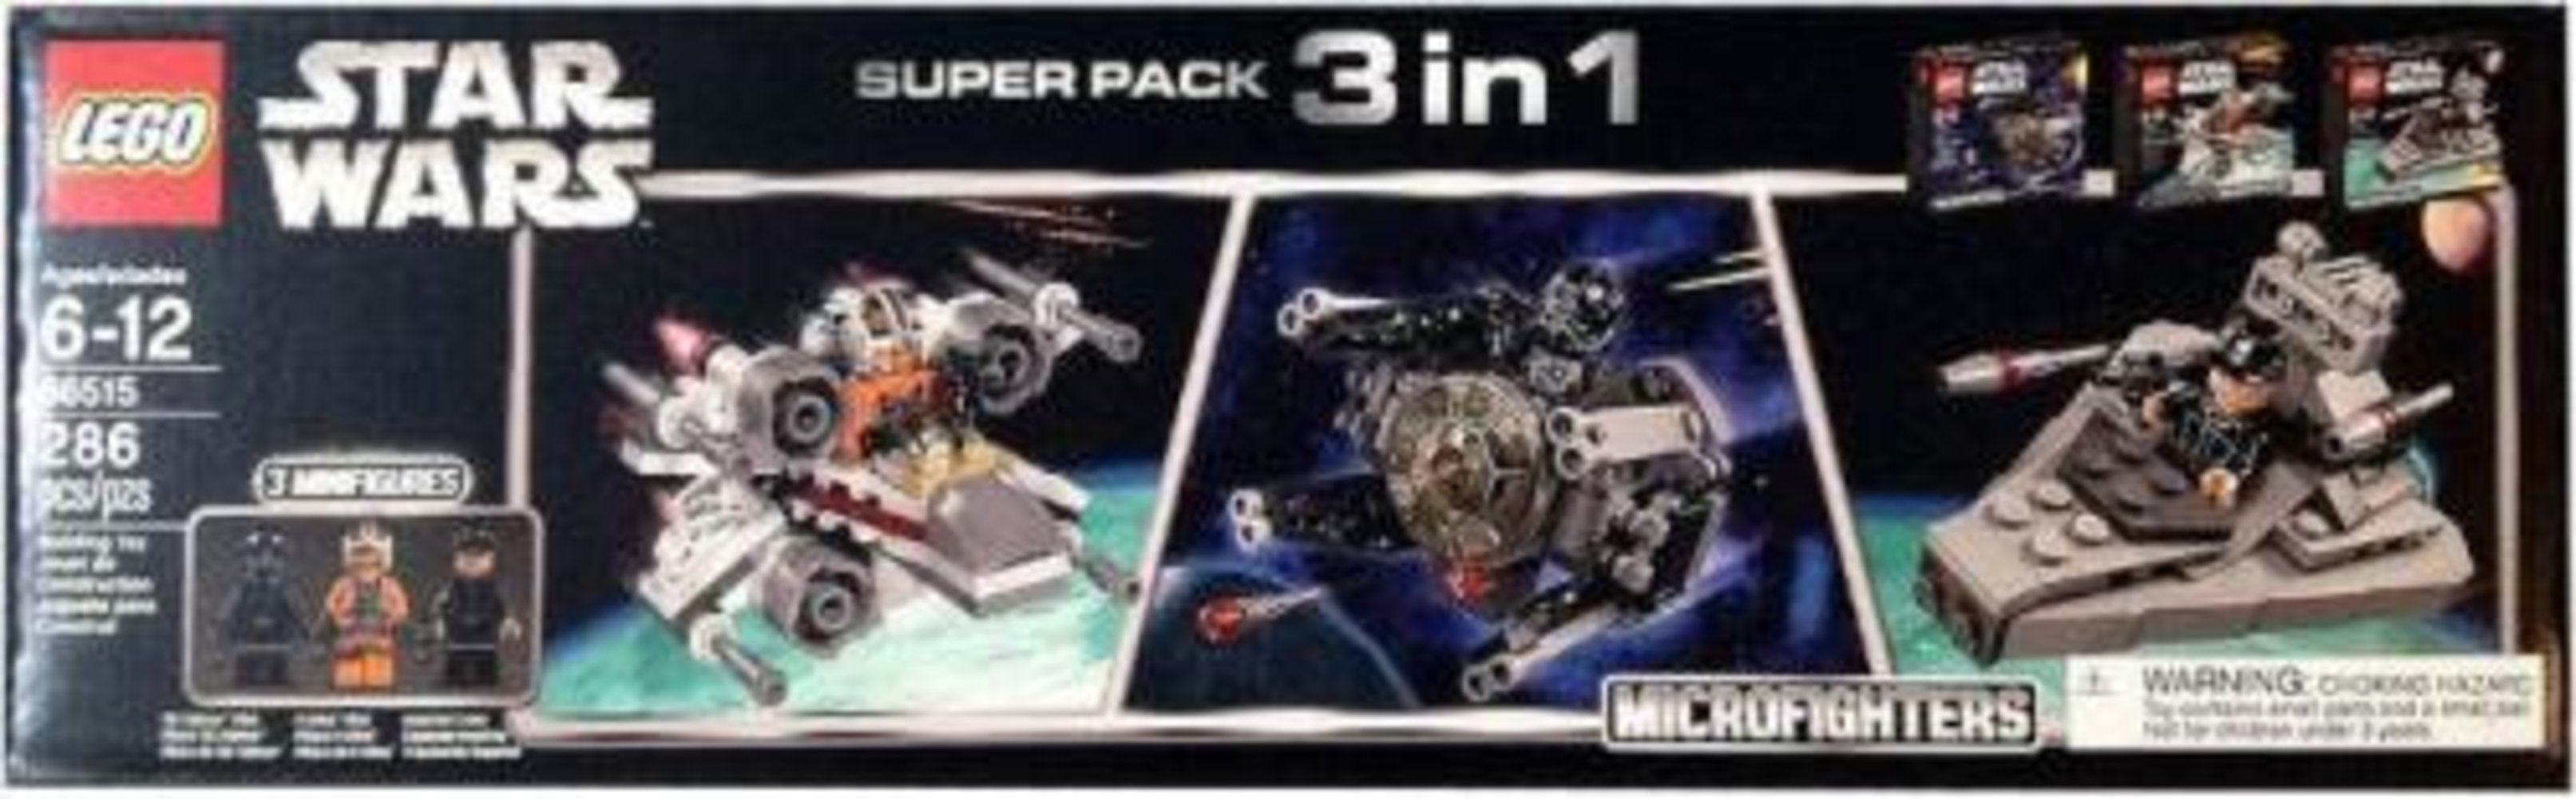 Star Wars Microfighters Super Pack 3 in 1 (75031, 75032, 75033)